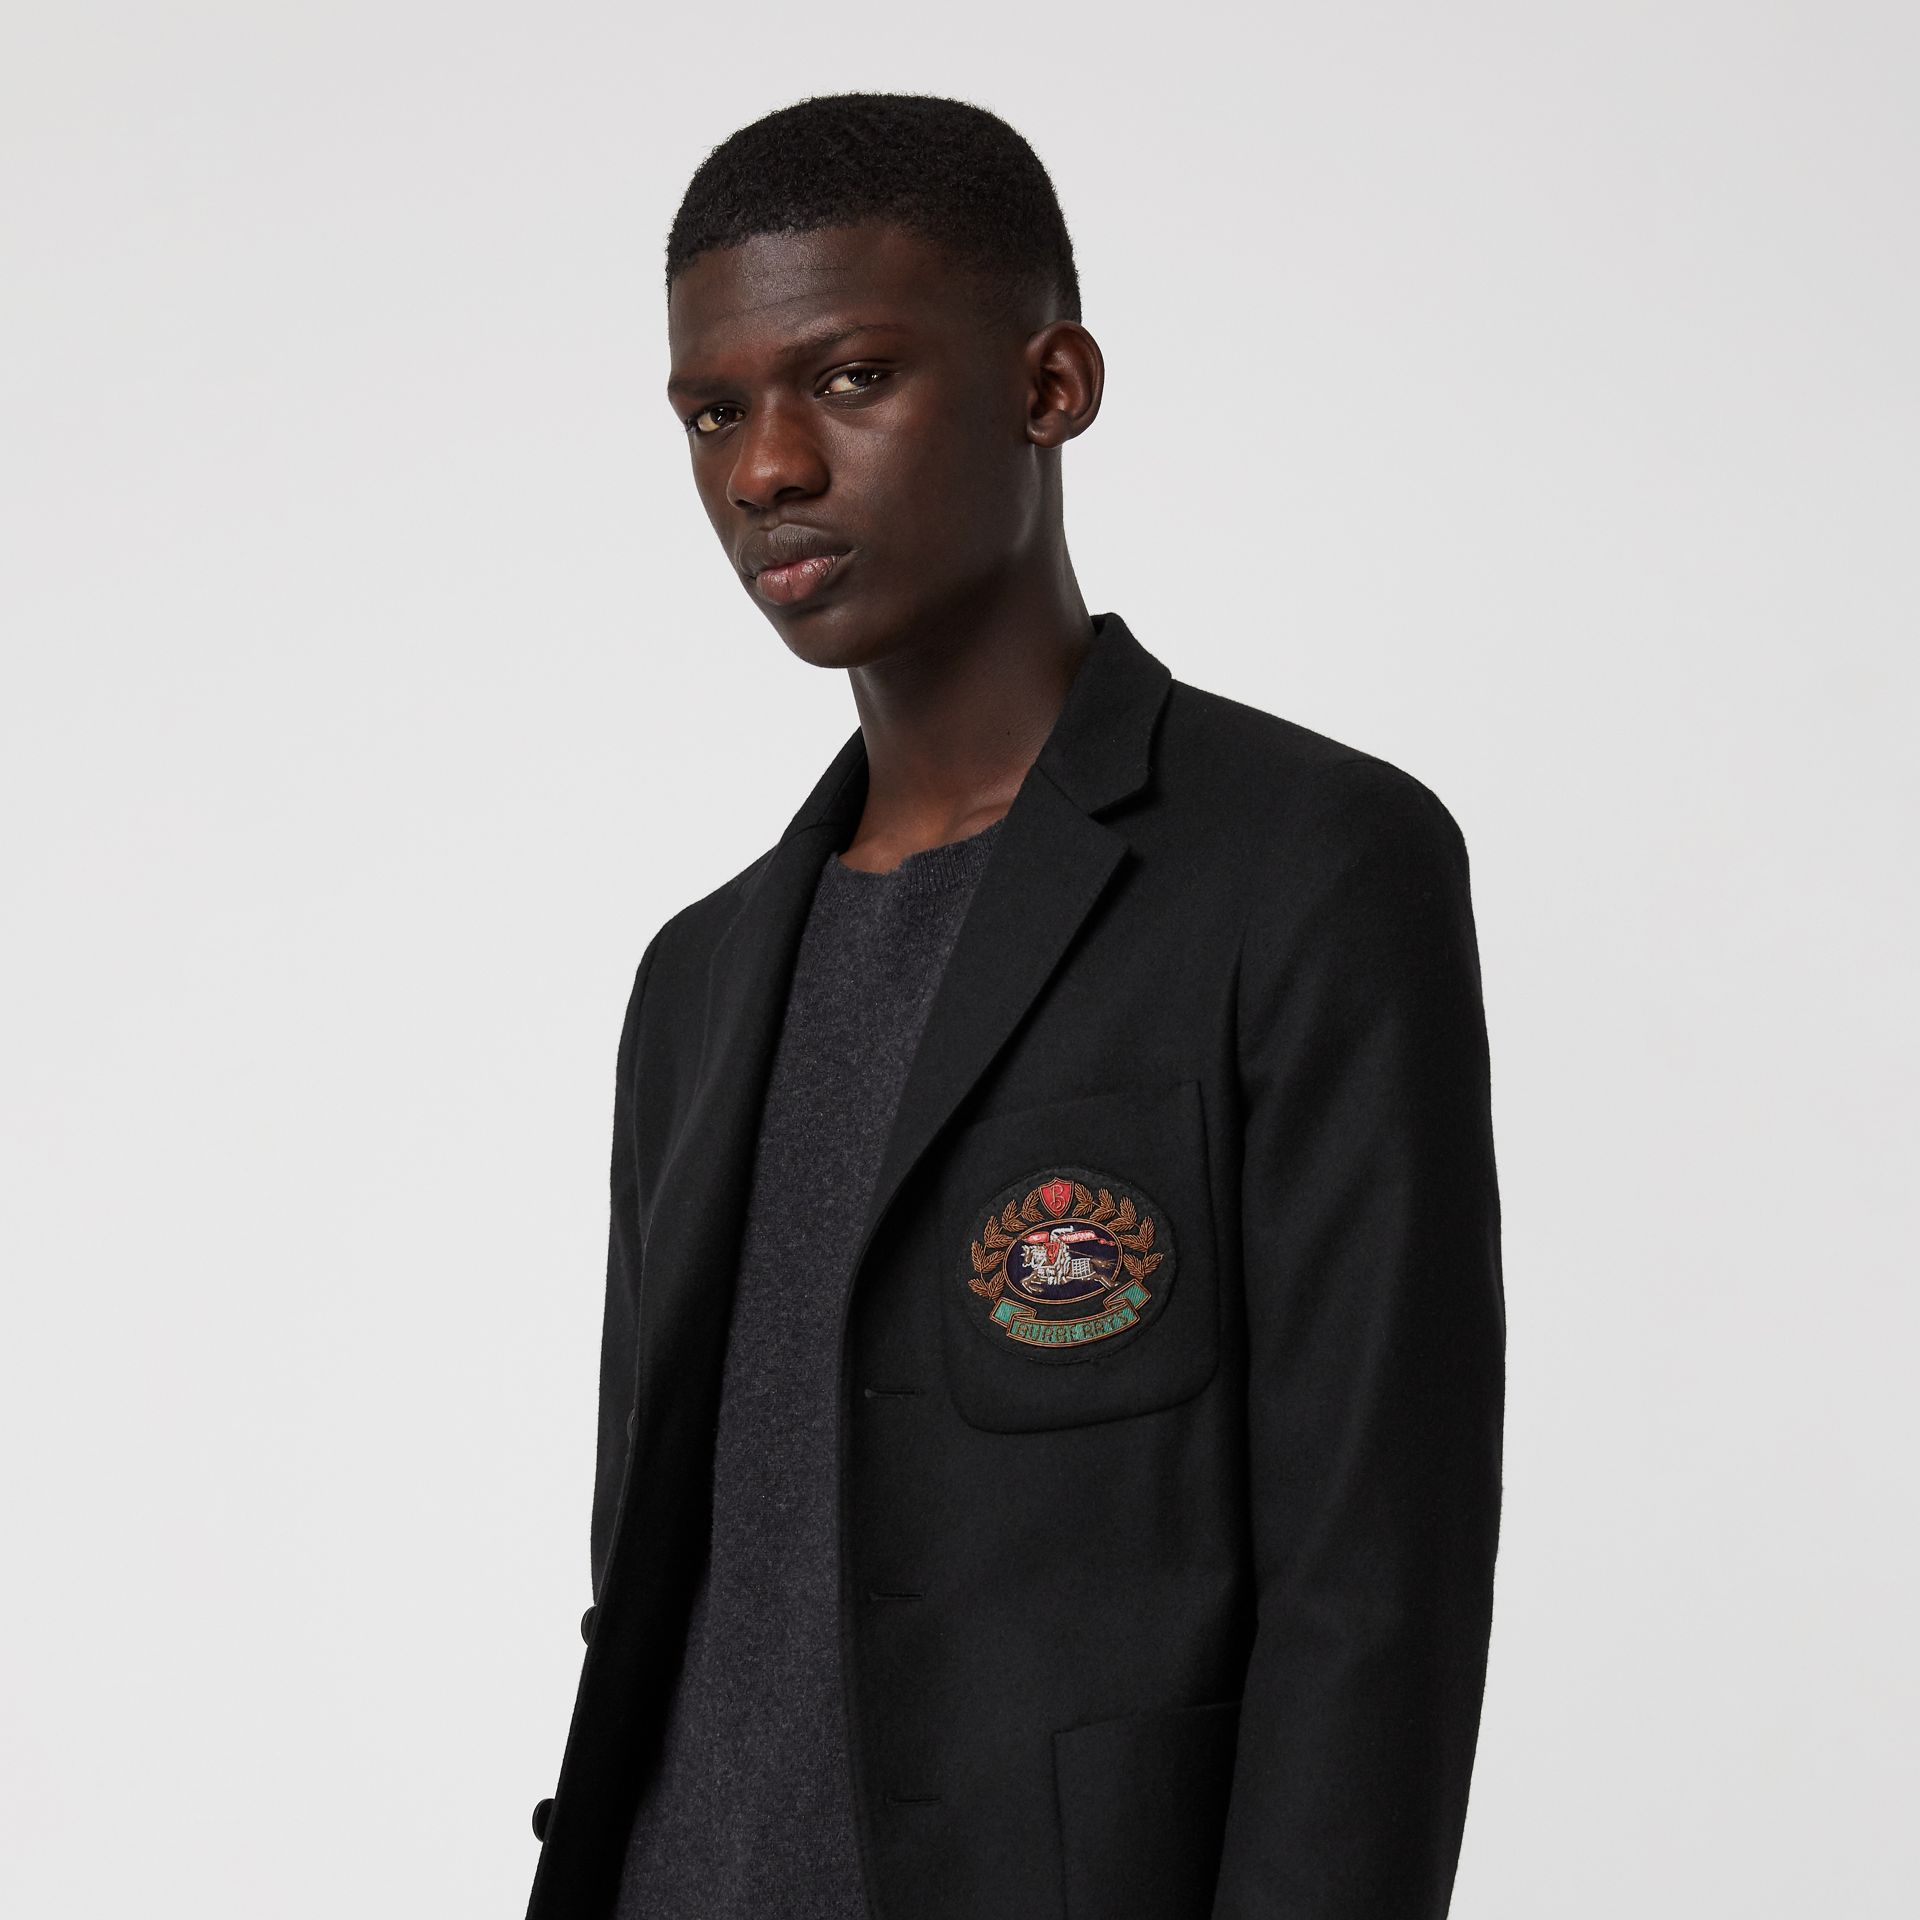 Slim Fit Embroidered Crest Wool Club Blazer in Black - Men | Burberry Australia - gallery image 1